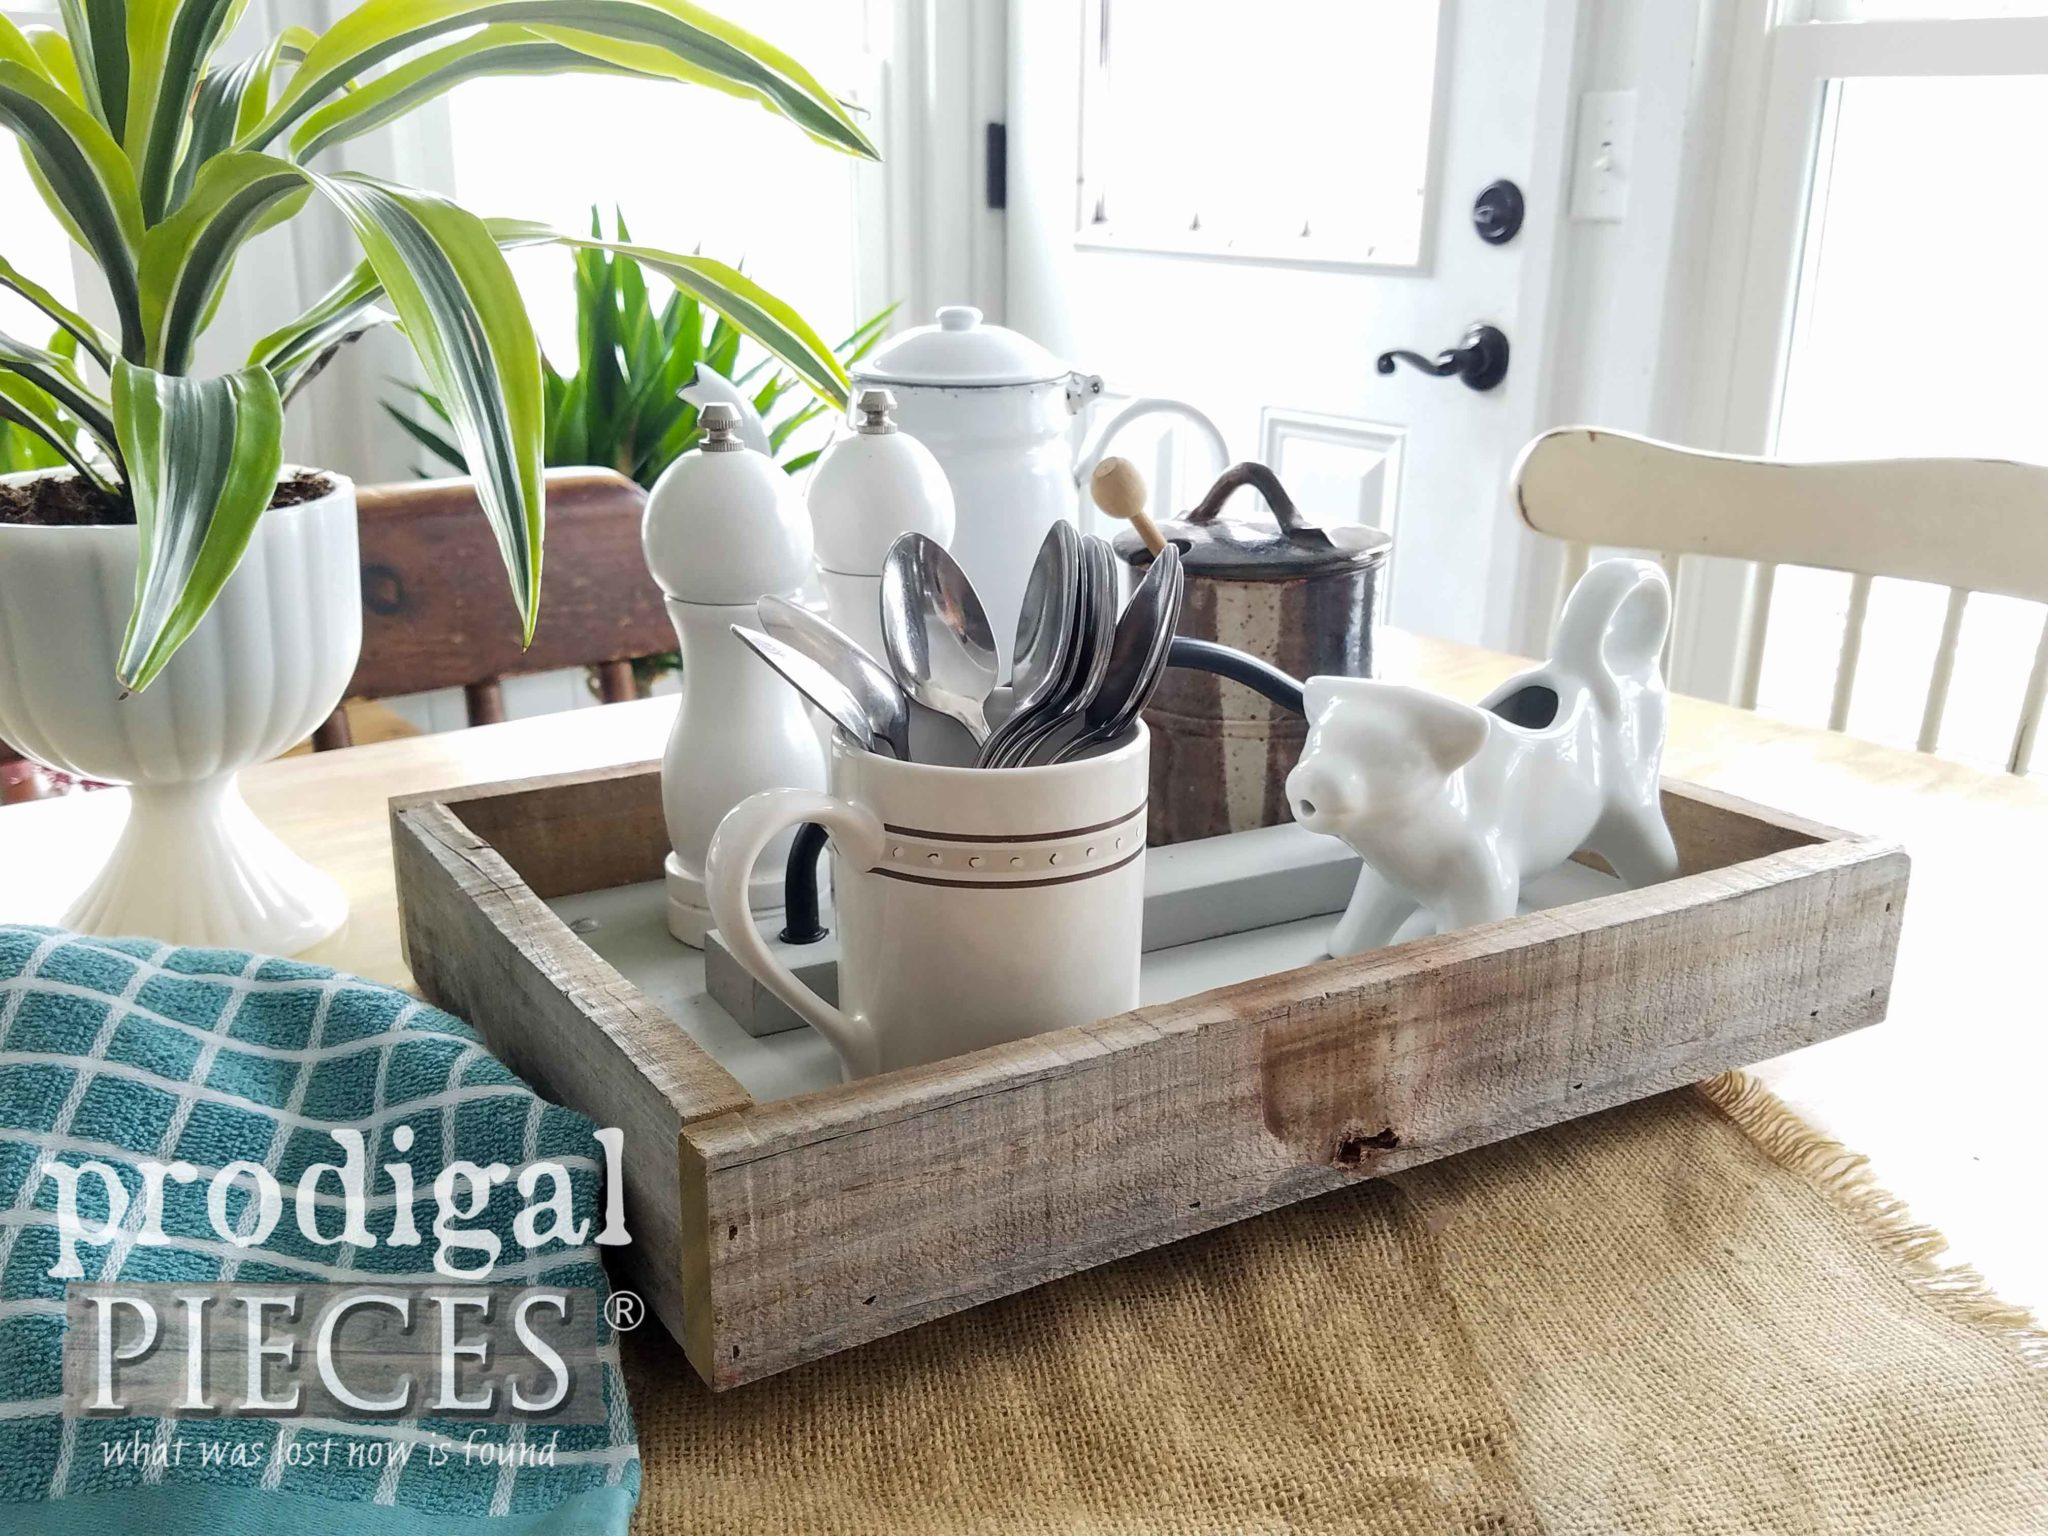 Reclaimed Wood Tray for Farmhouse Decor by Larissa of Prodigal Pieces | prodigalpieces.com